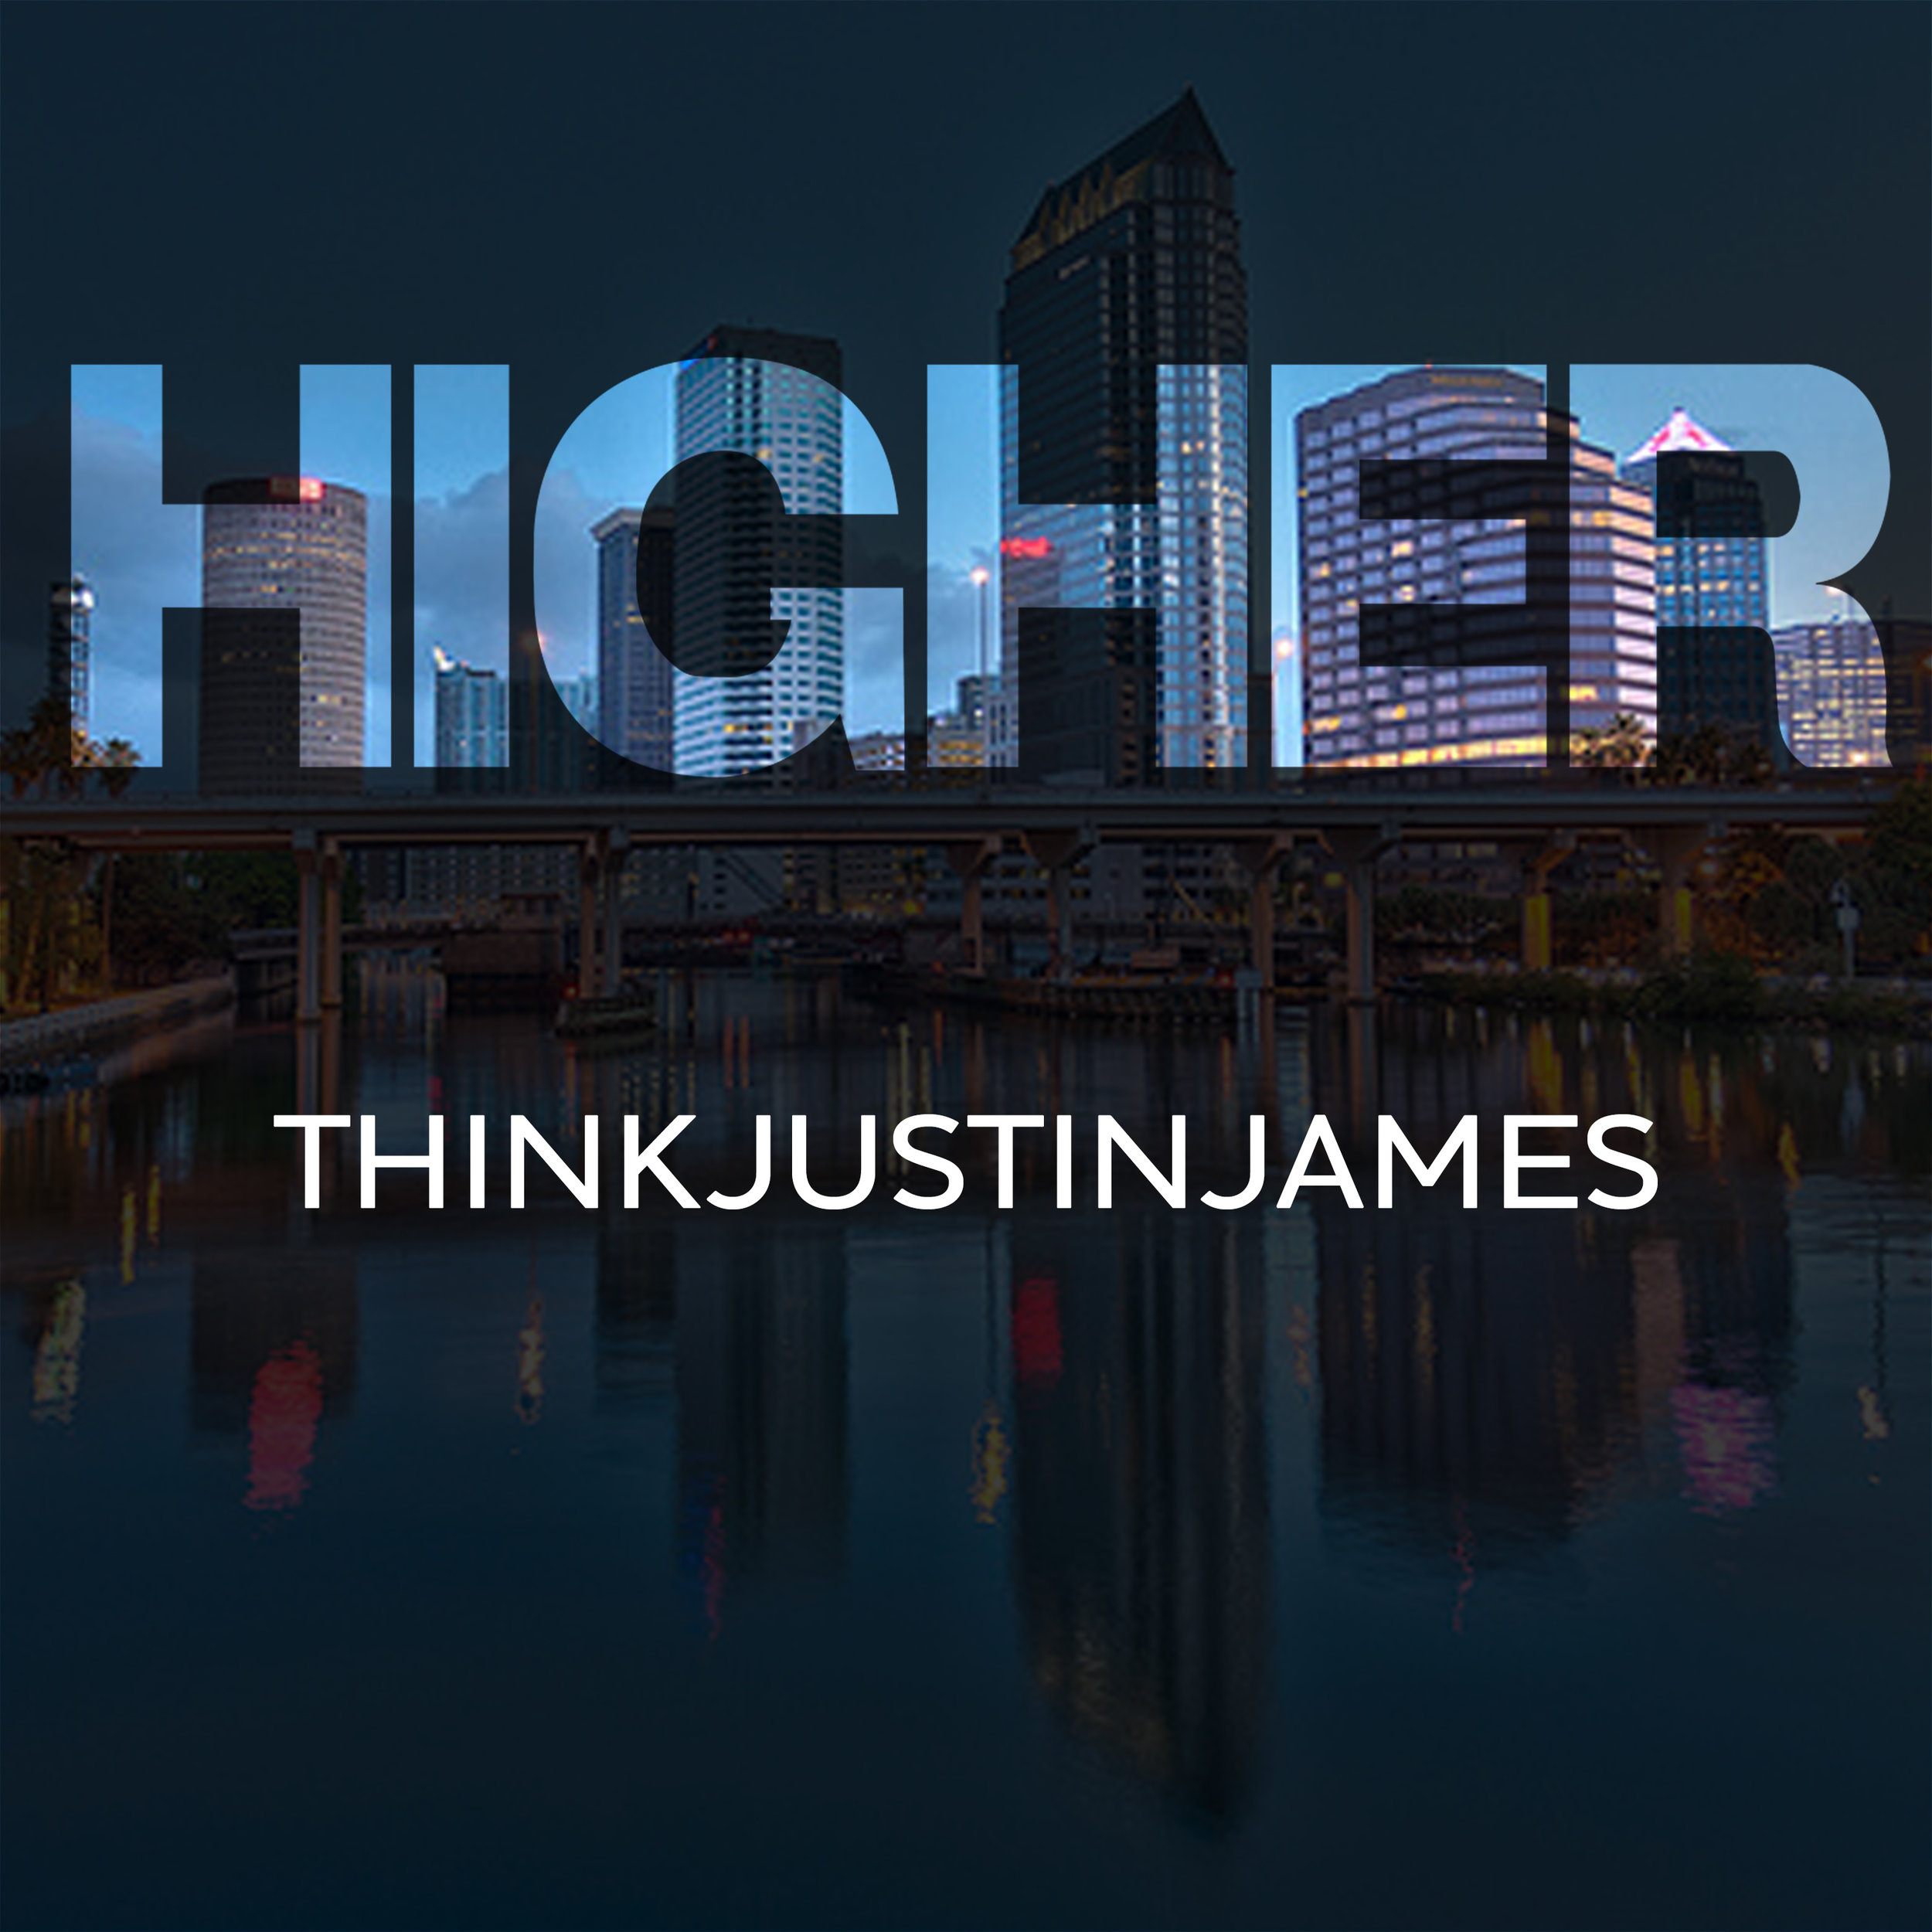 THINKJustinjames - Higher - Art.jpg